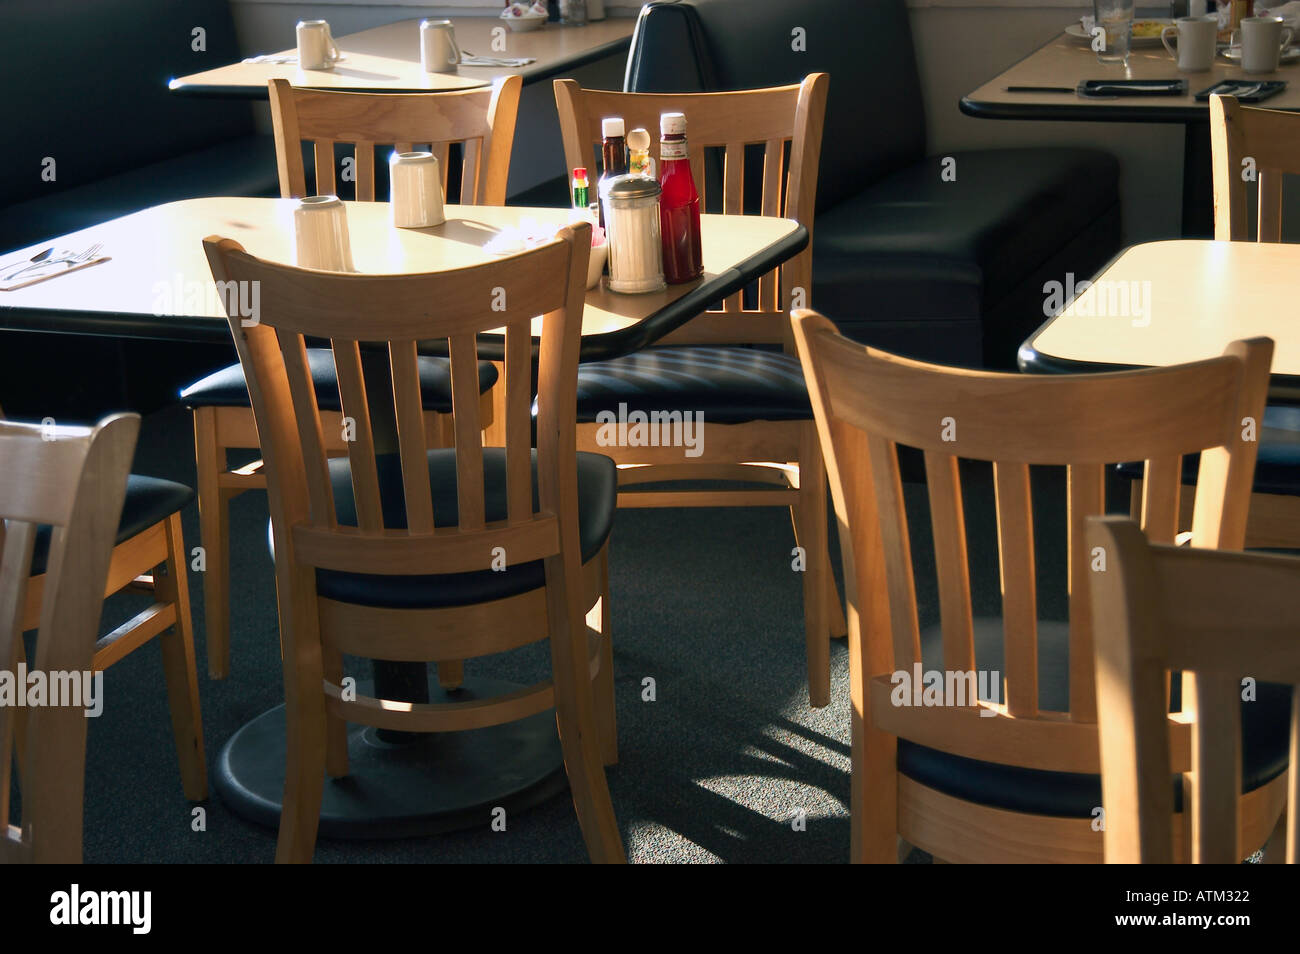 Coffee Shop Tables And Chairs coffee shop tables and chairs stock photo, royalty free image